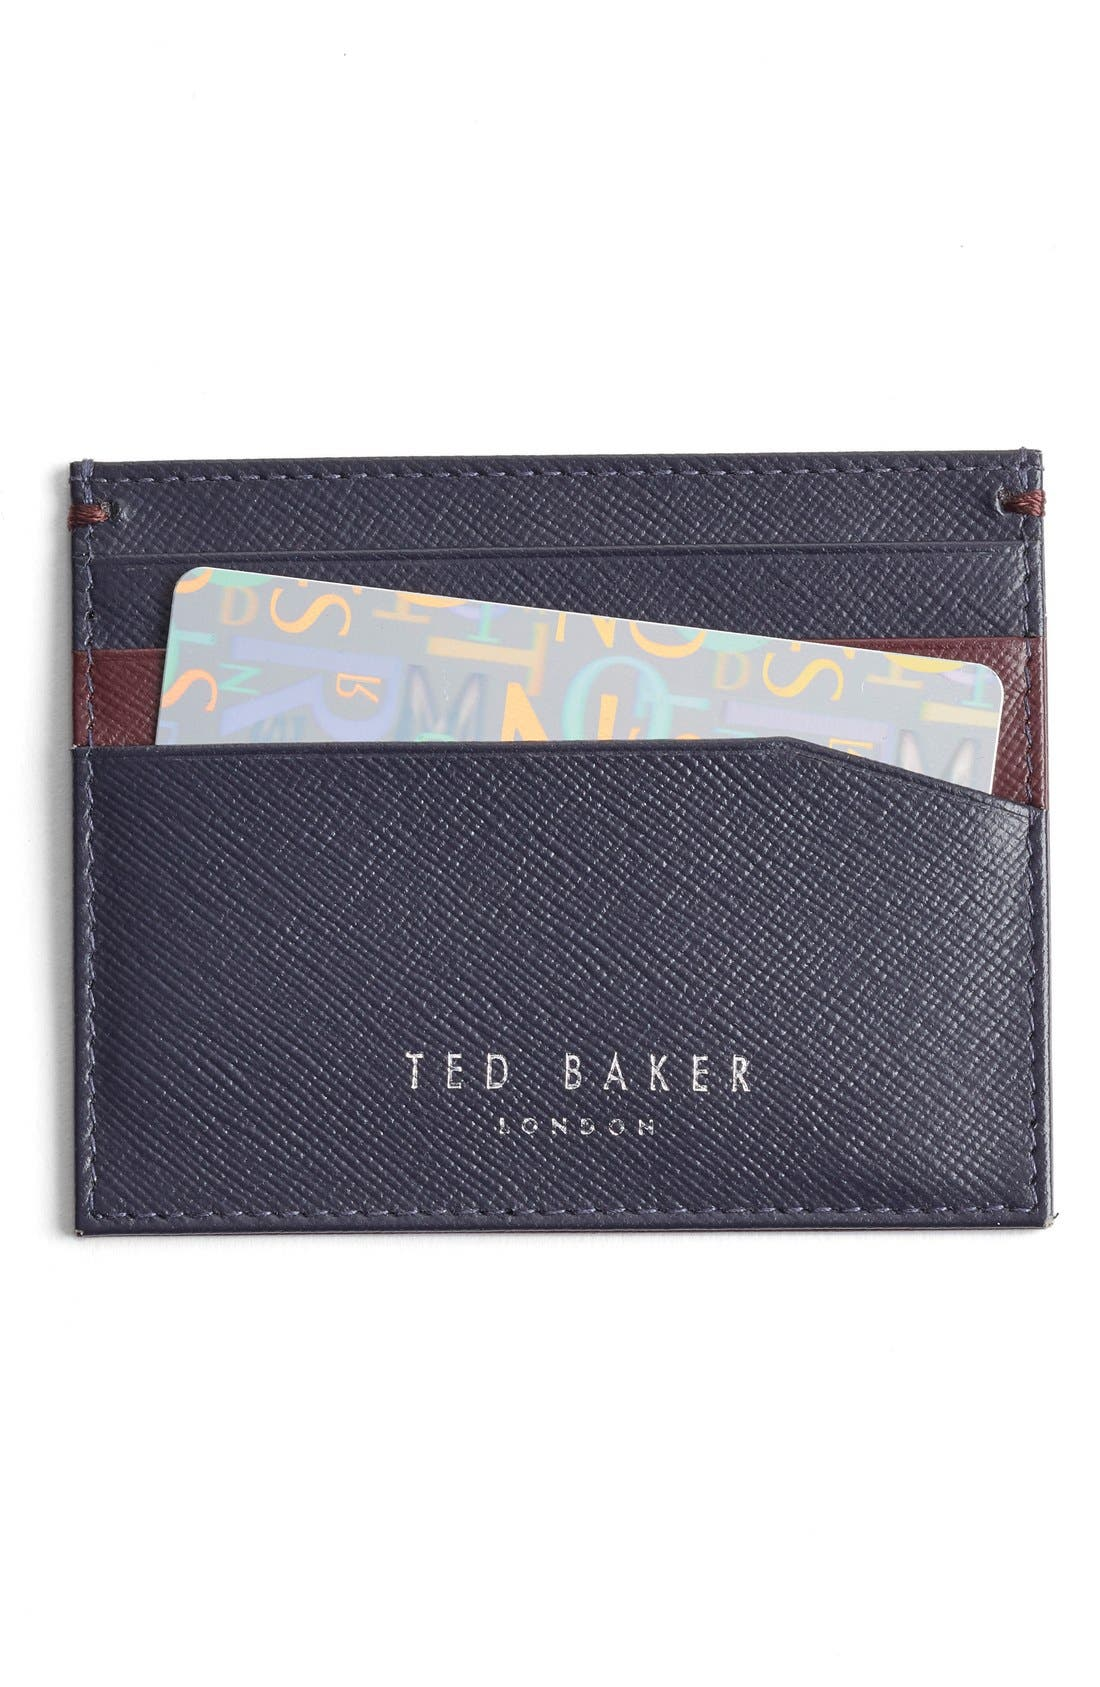 TED BAKER LONDON 'Froncko' Leather Card Case